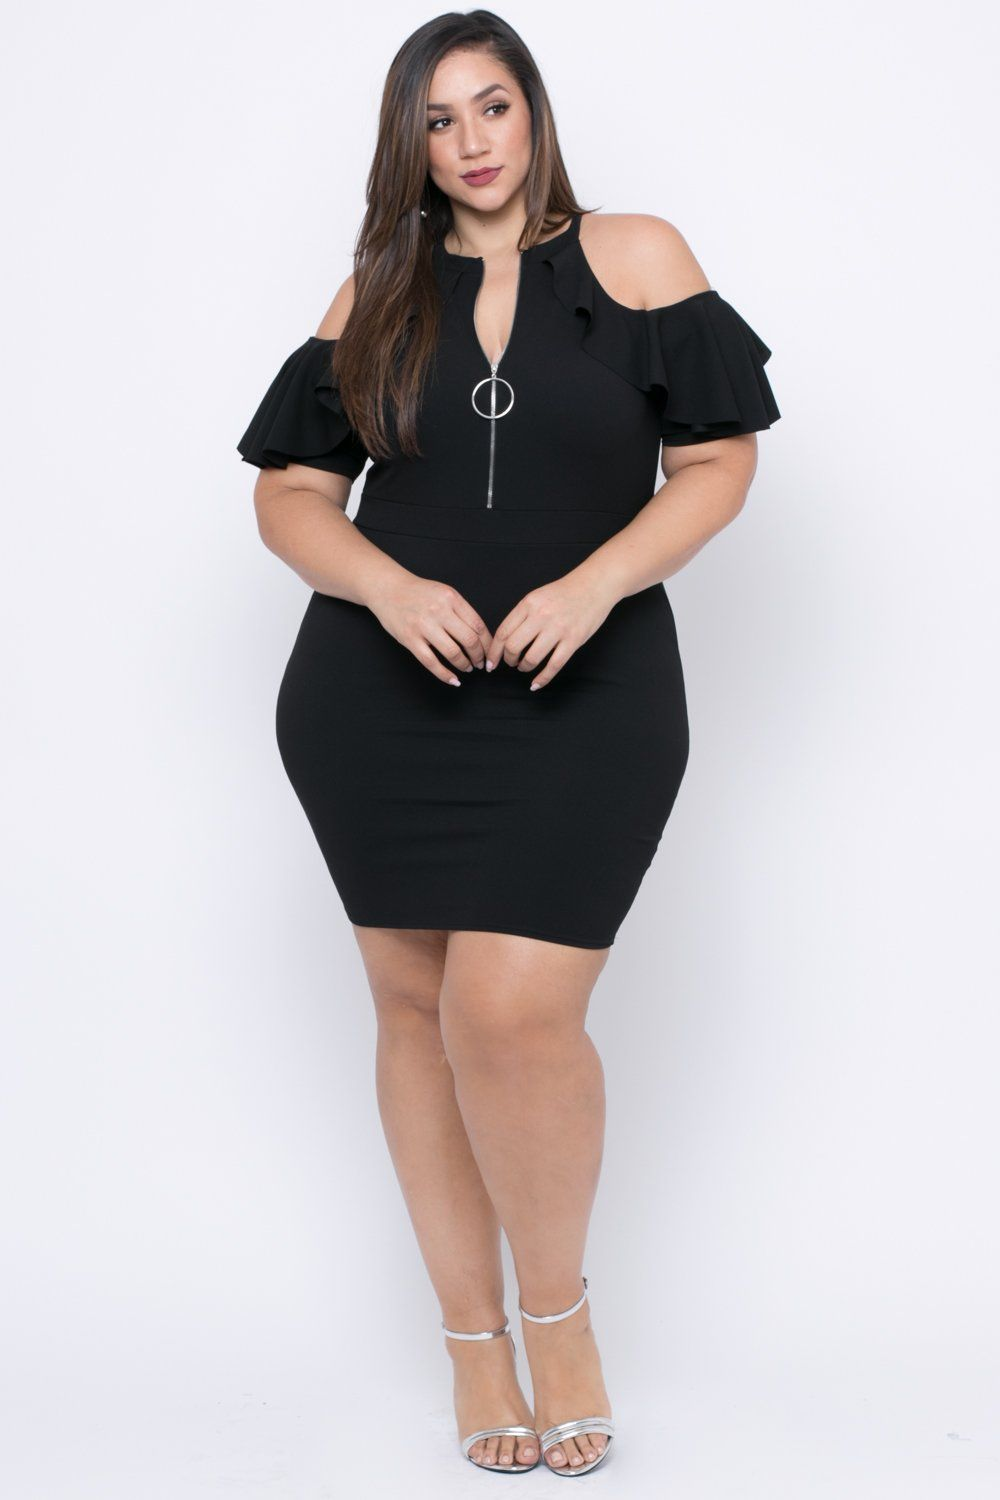 b69b378616 Plus Size Zip Me Up Dress - Black